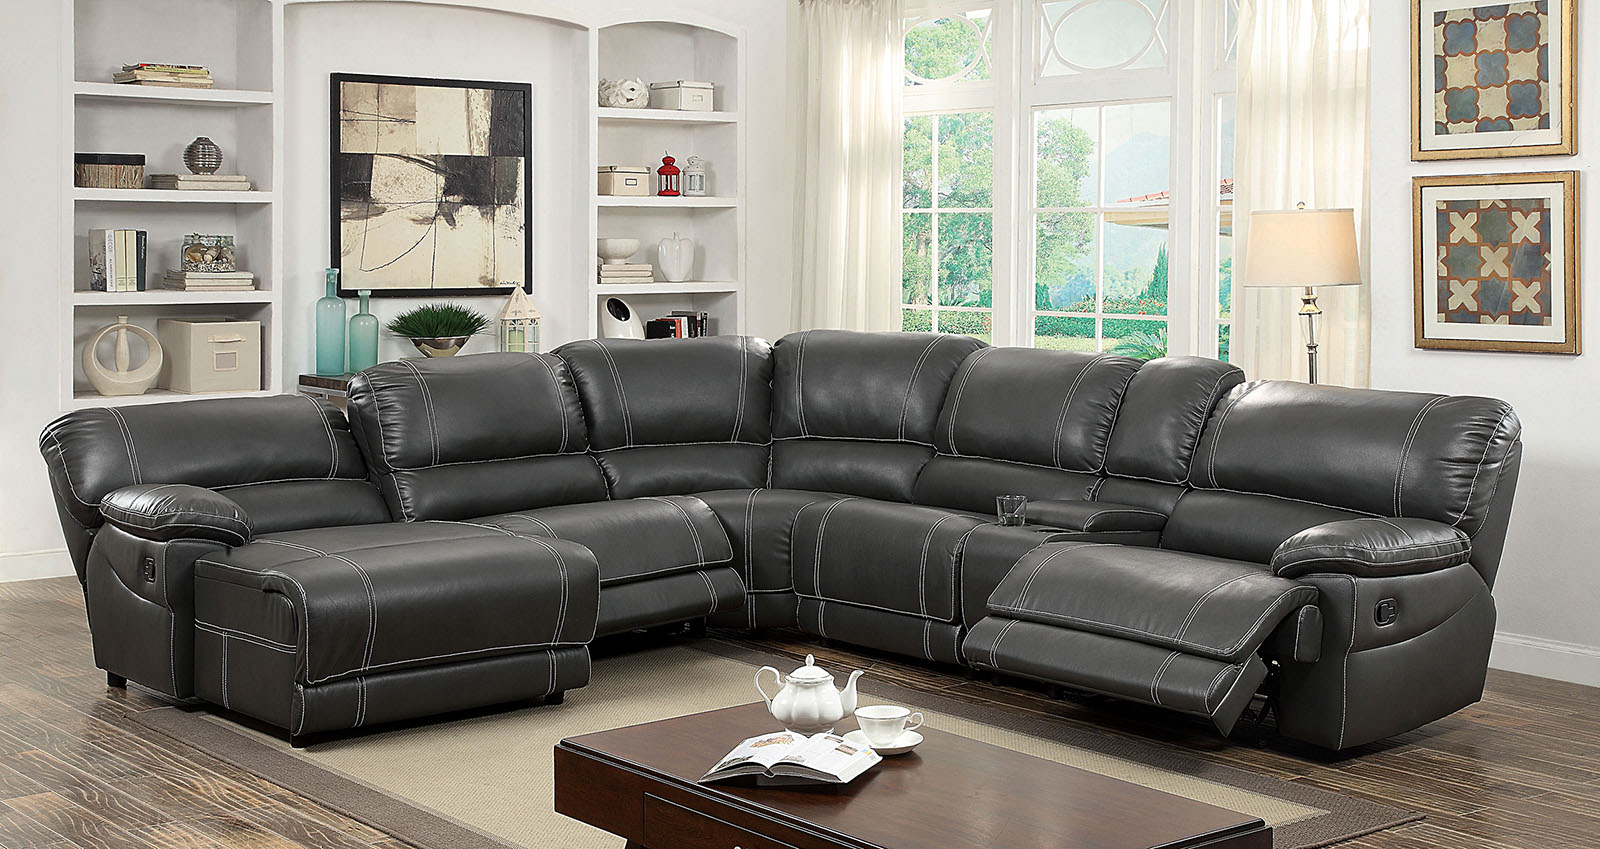 estrella gy gray reclining console chaise sectional sofa. furniture of america gy gray reclining chaise console